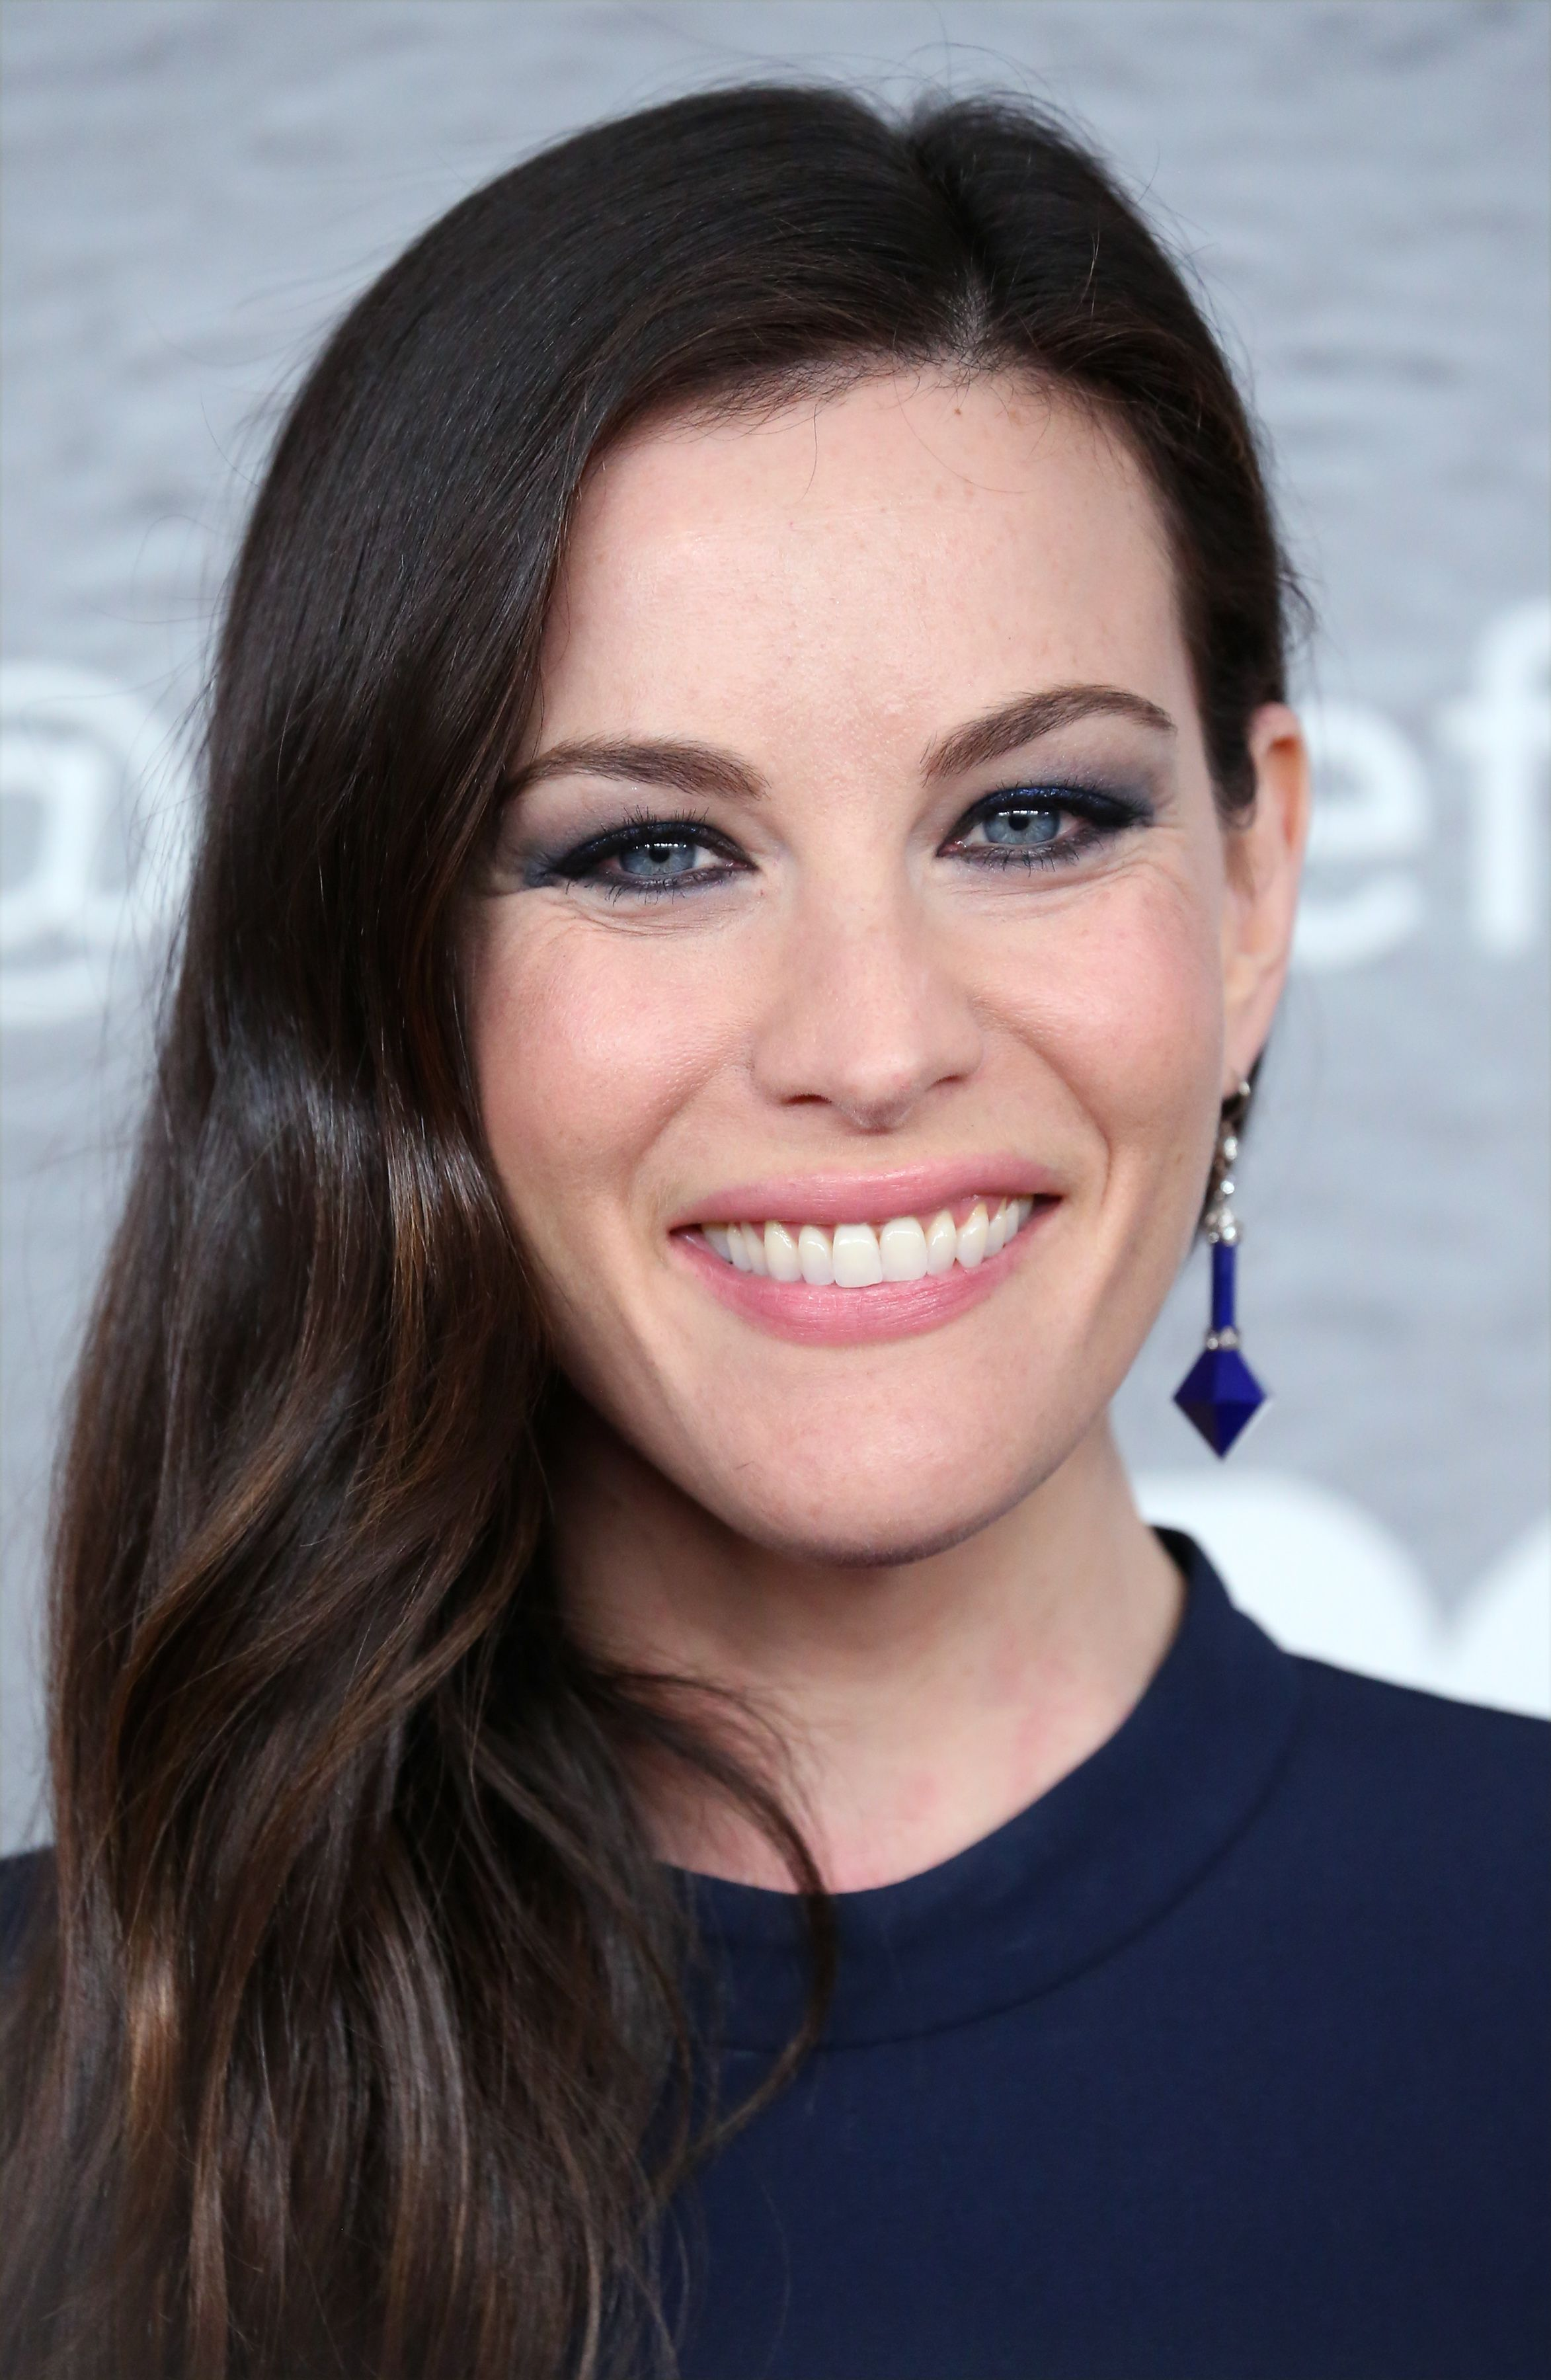 Liv Tyler Nude Pics Makes Our Heart Fill With Joy! - Celeb ...